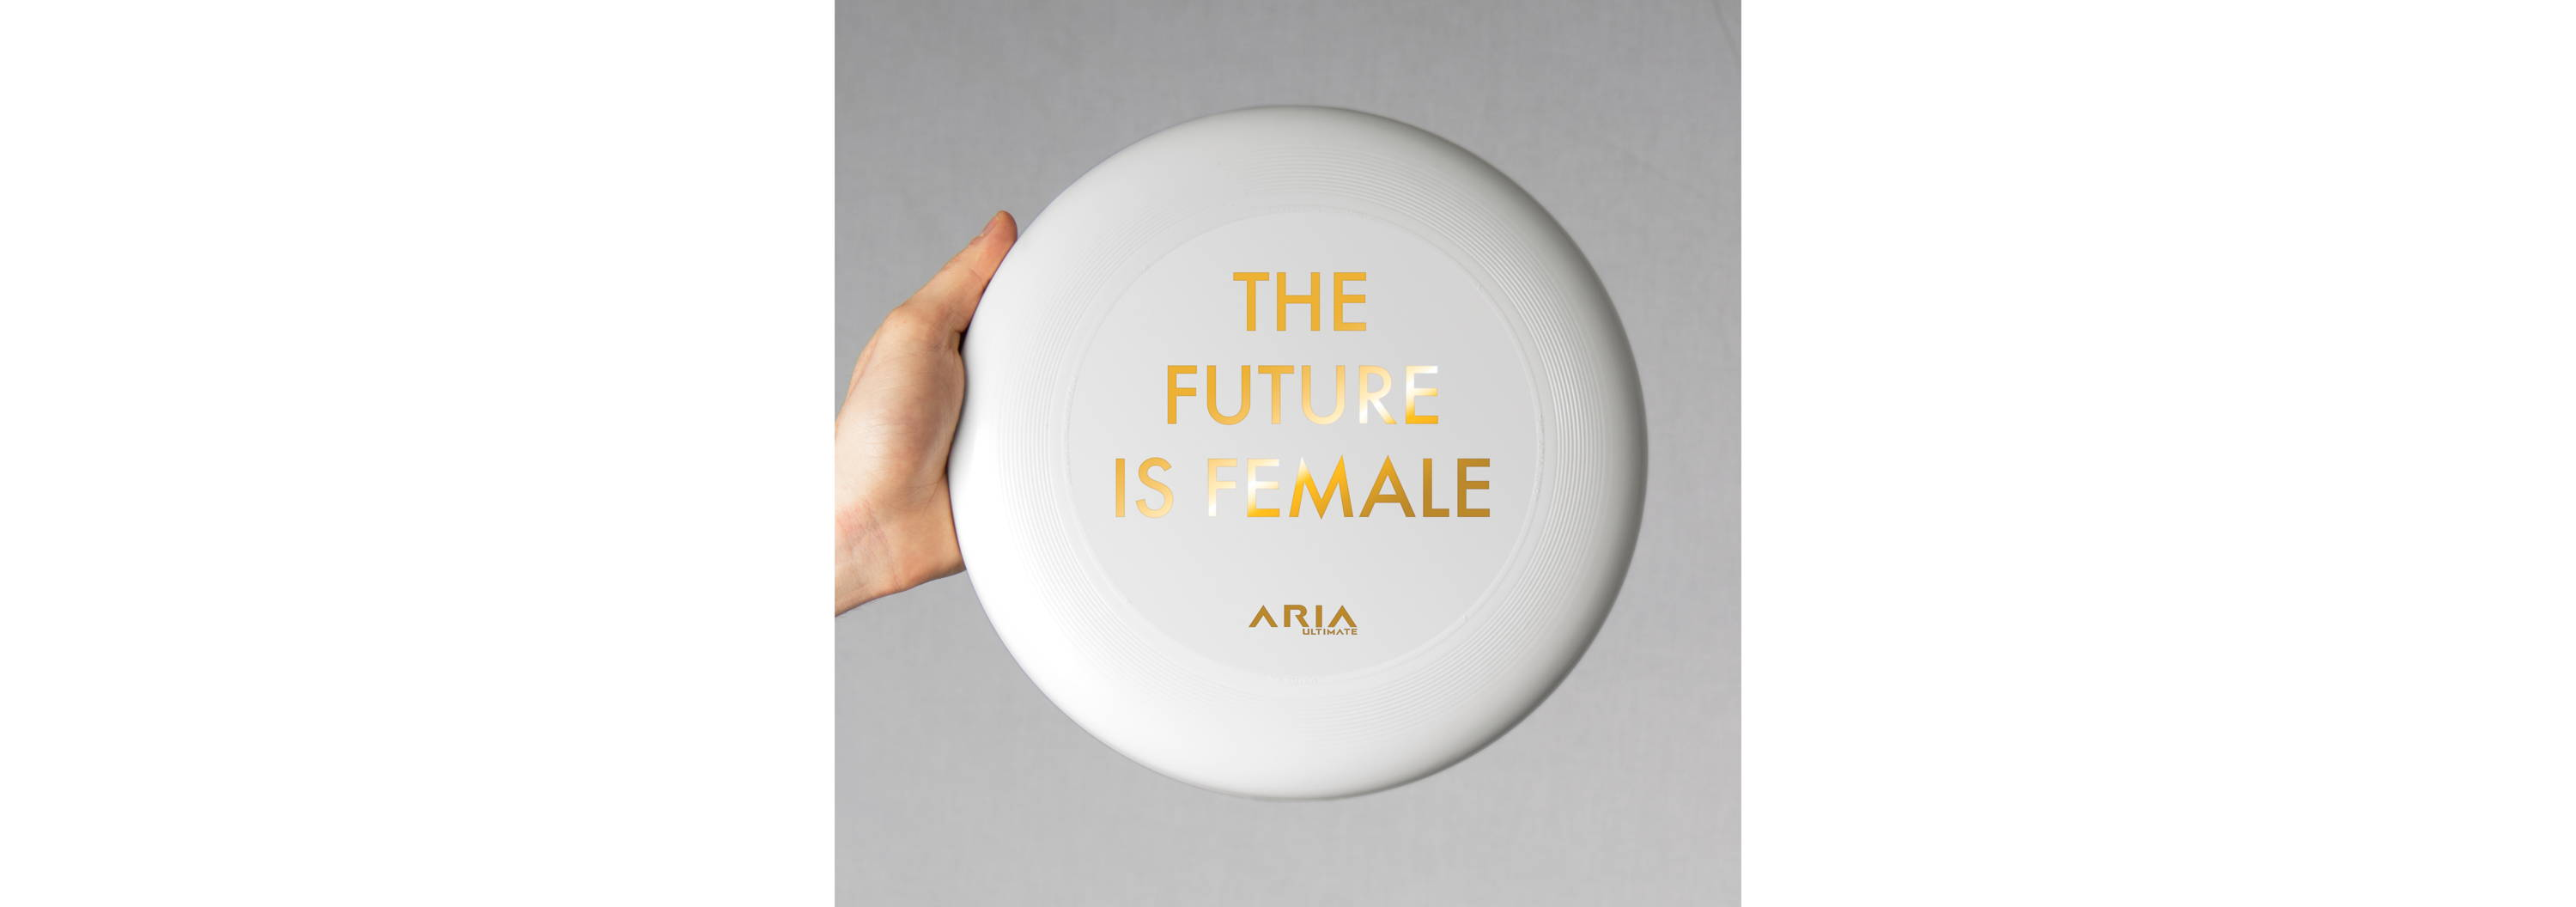 ARIA professional official ultimate flying disc for the sport commonly known as 'ultimate frisbee' the future is female